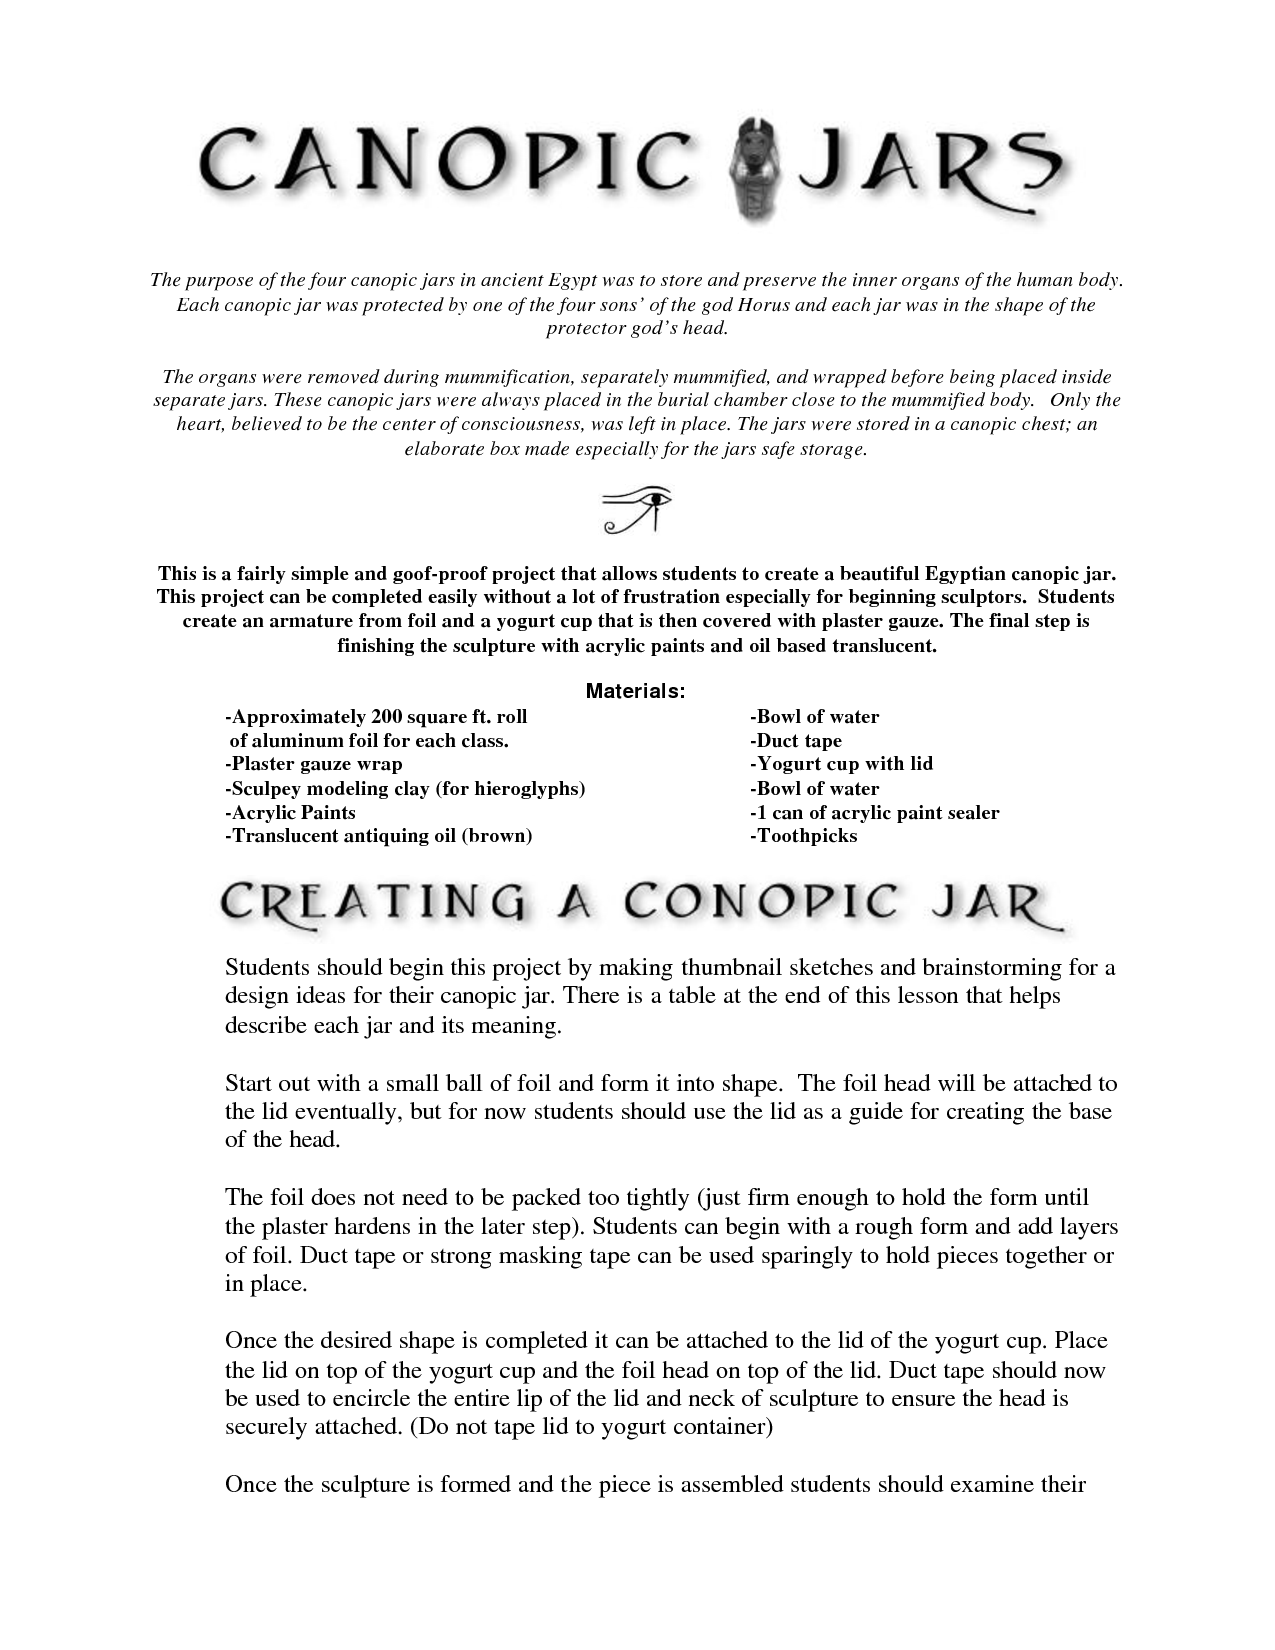 scope of work template | Ancient Egypt Art Projects and Inspiration ...